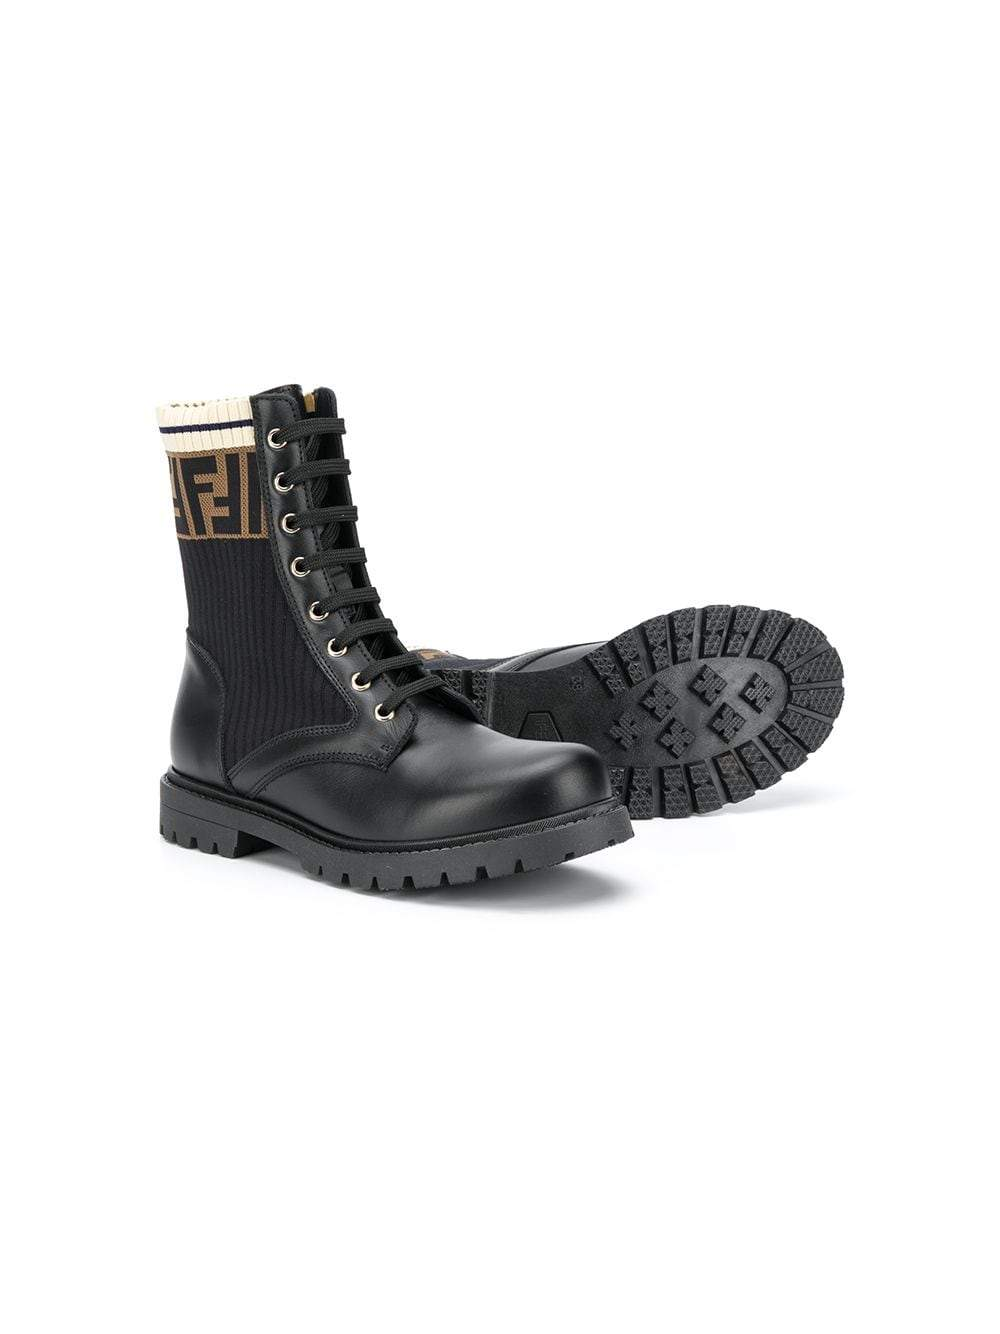 FENDI KIDS FF Logo Boots Black